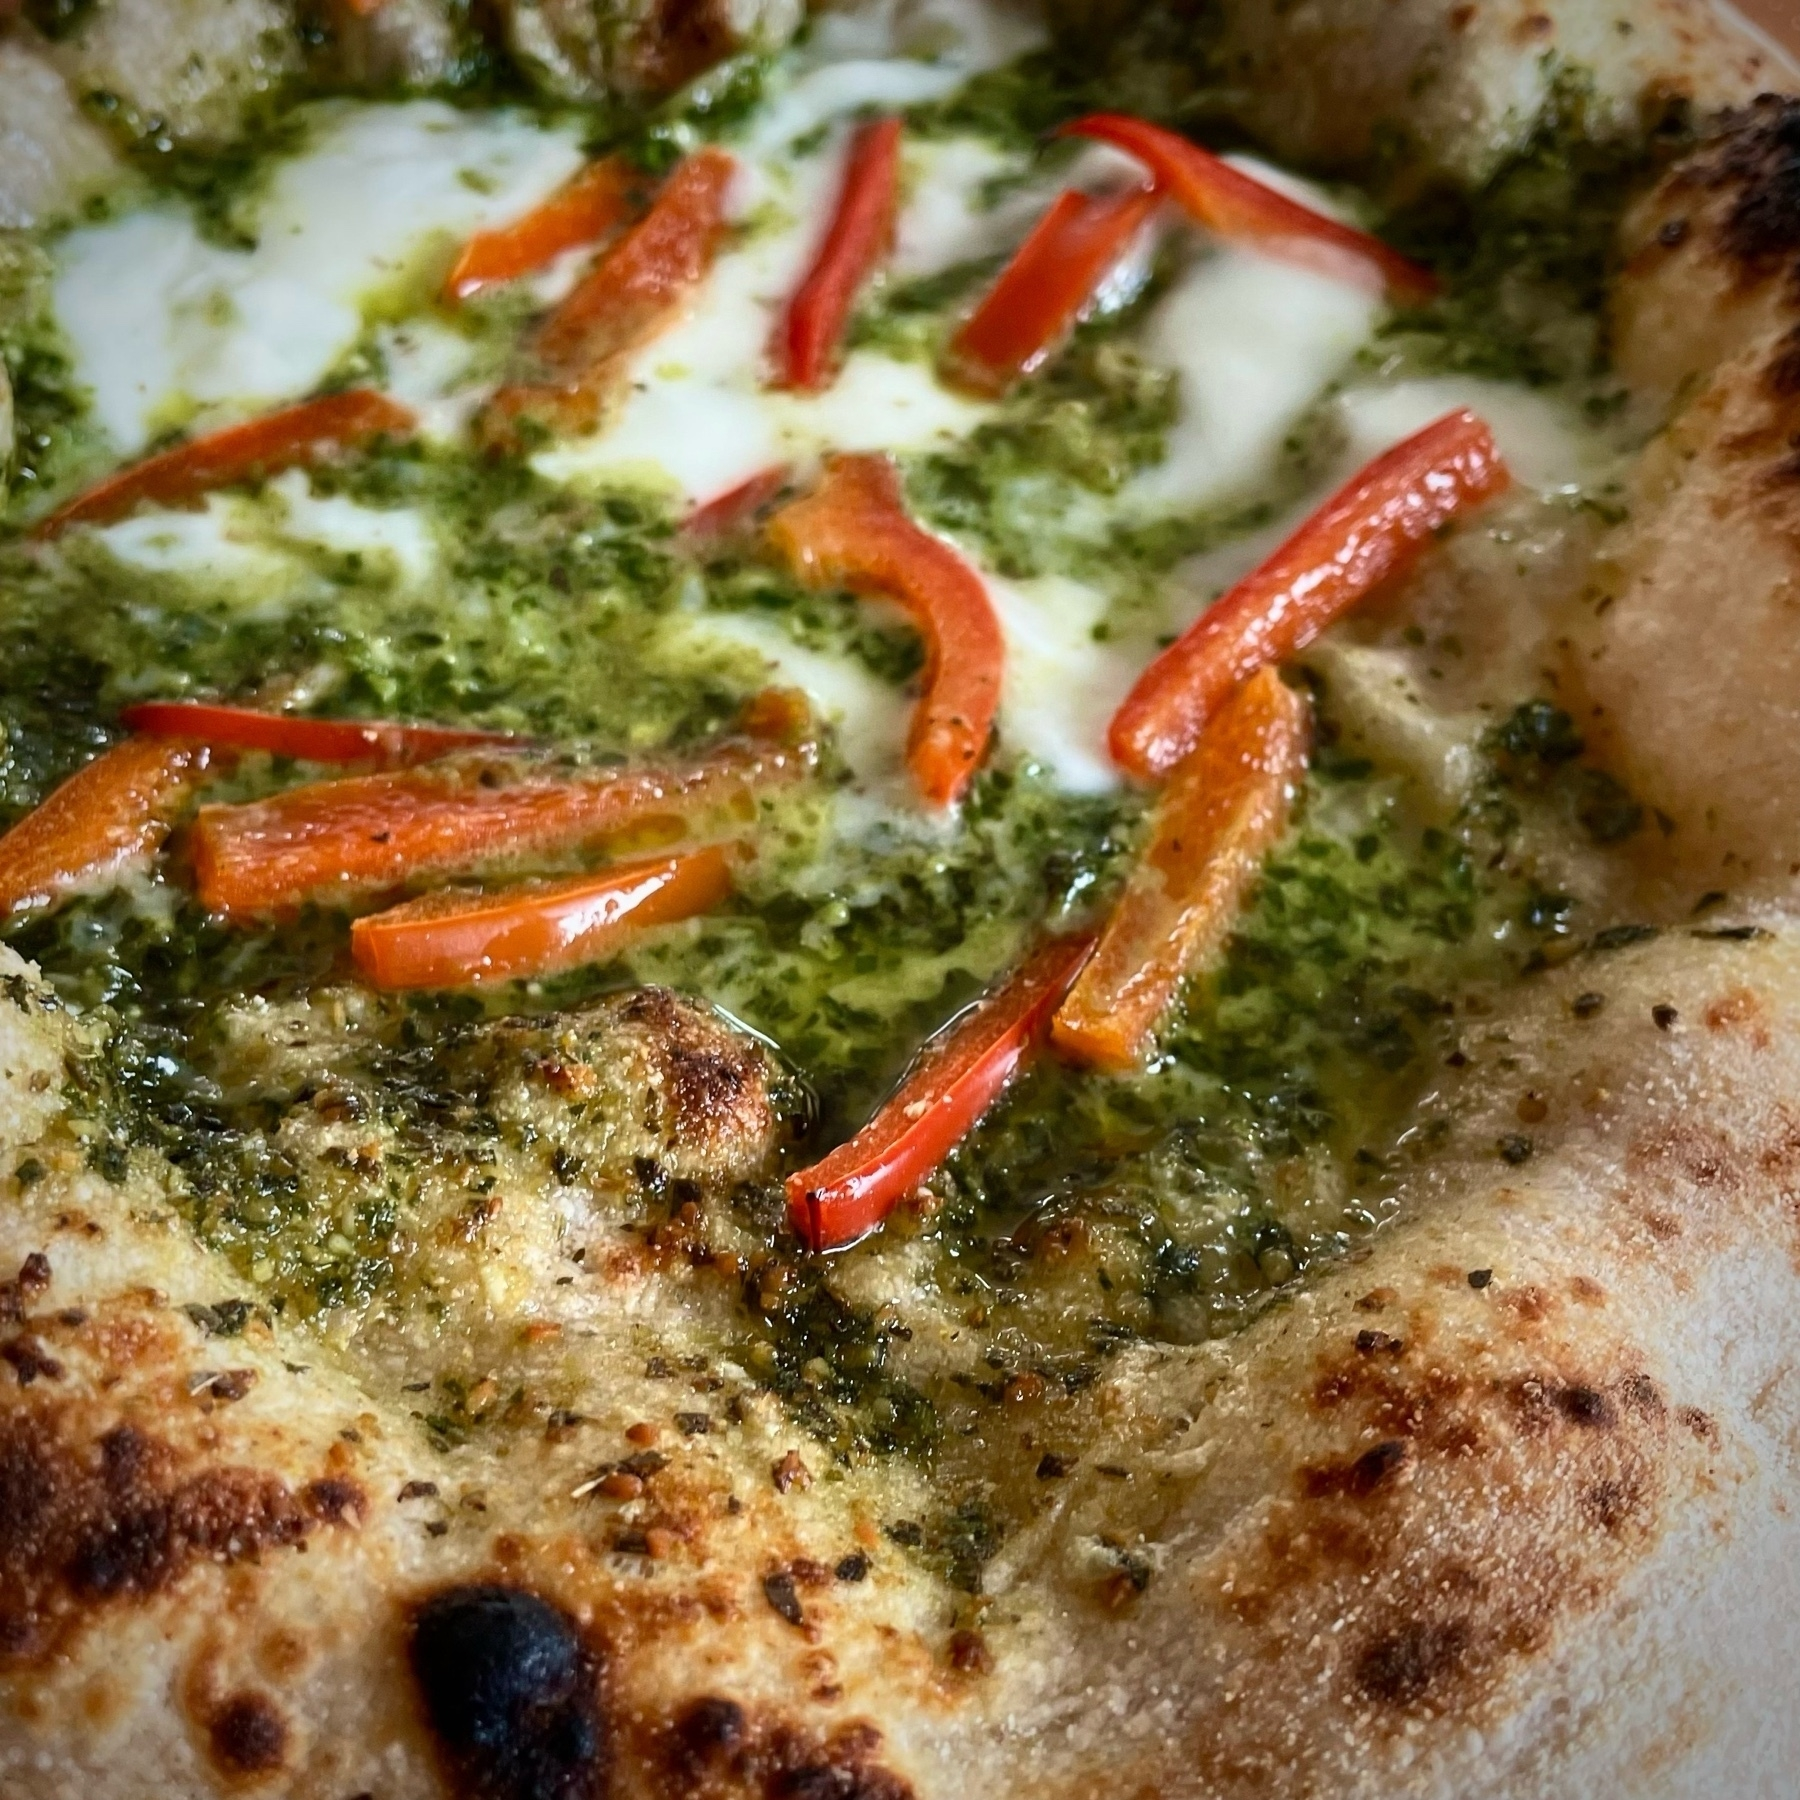 Pizza with pesto, bell peppers.